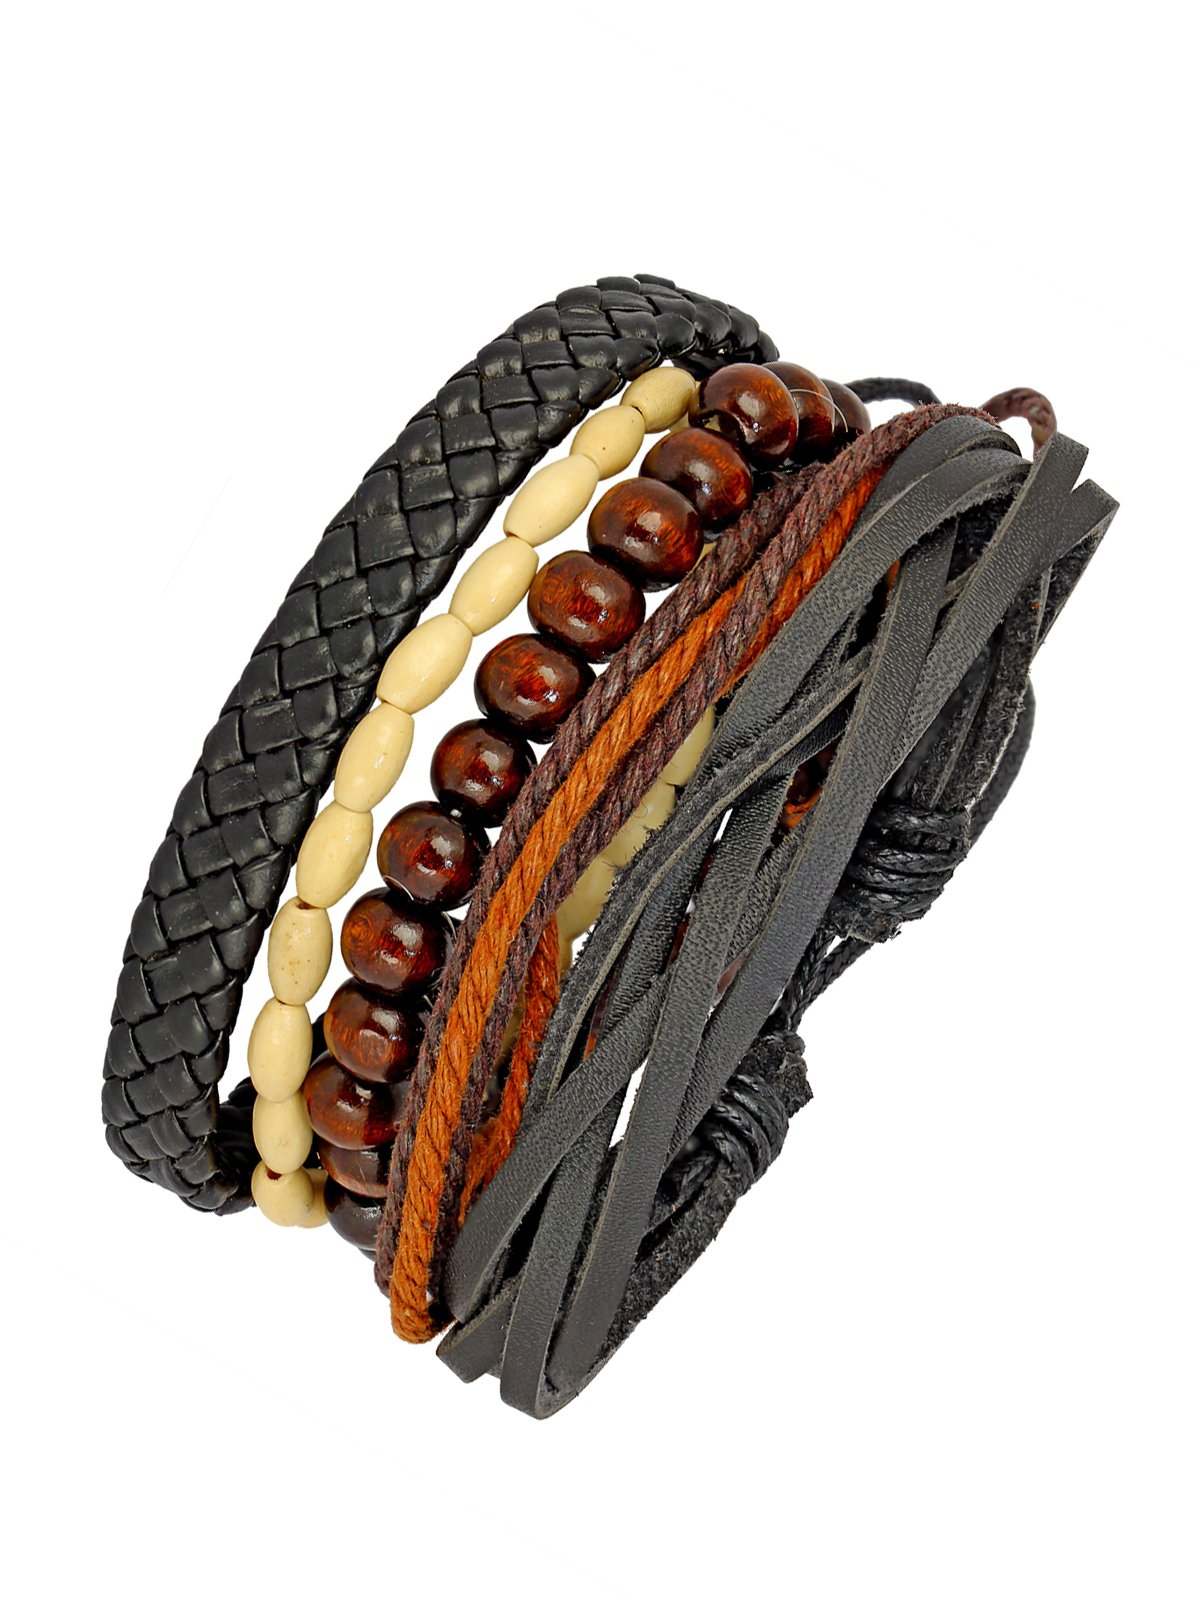 The Jewelbox Black Leather Coconut Beads Dyed Rope Casual Wrist Band Strand Bracelet Boys Men